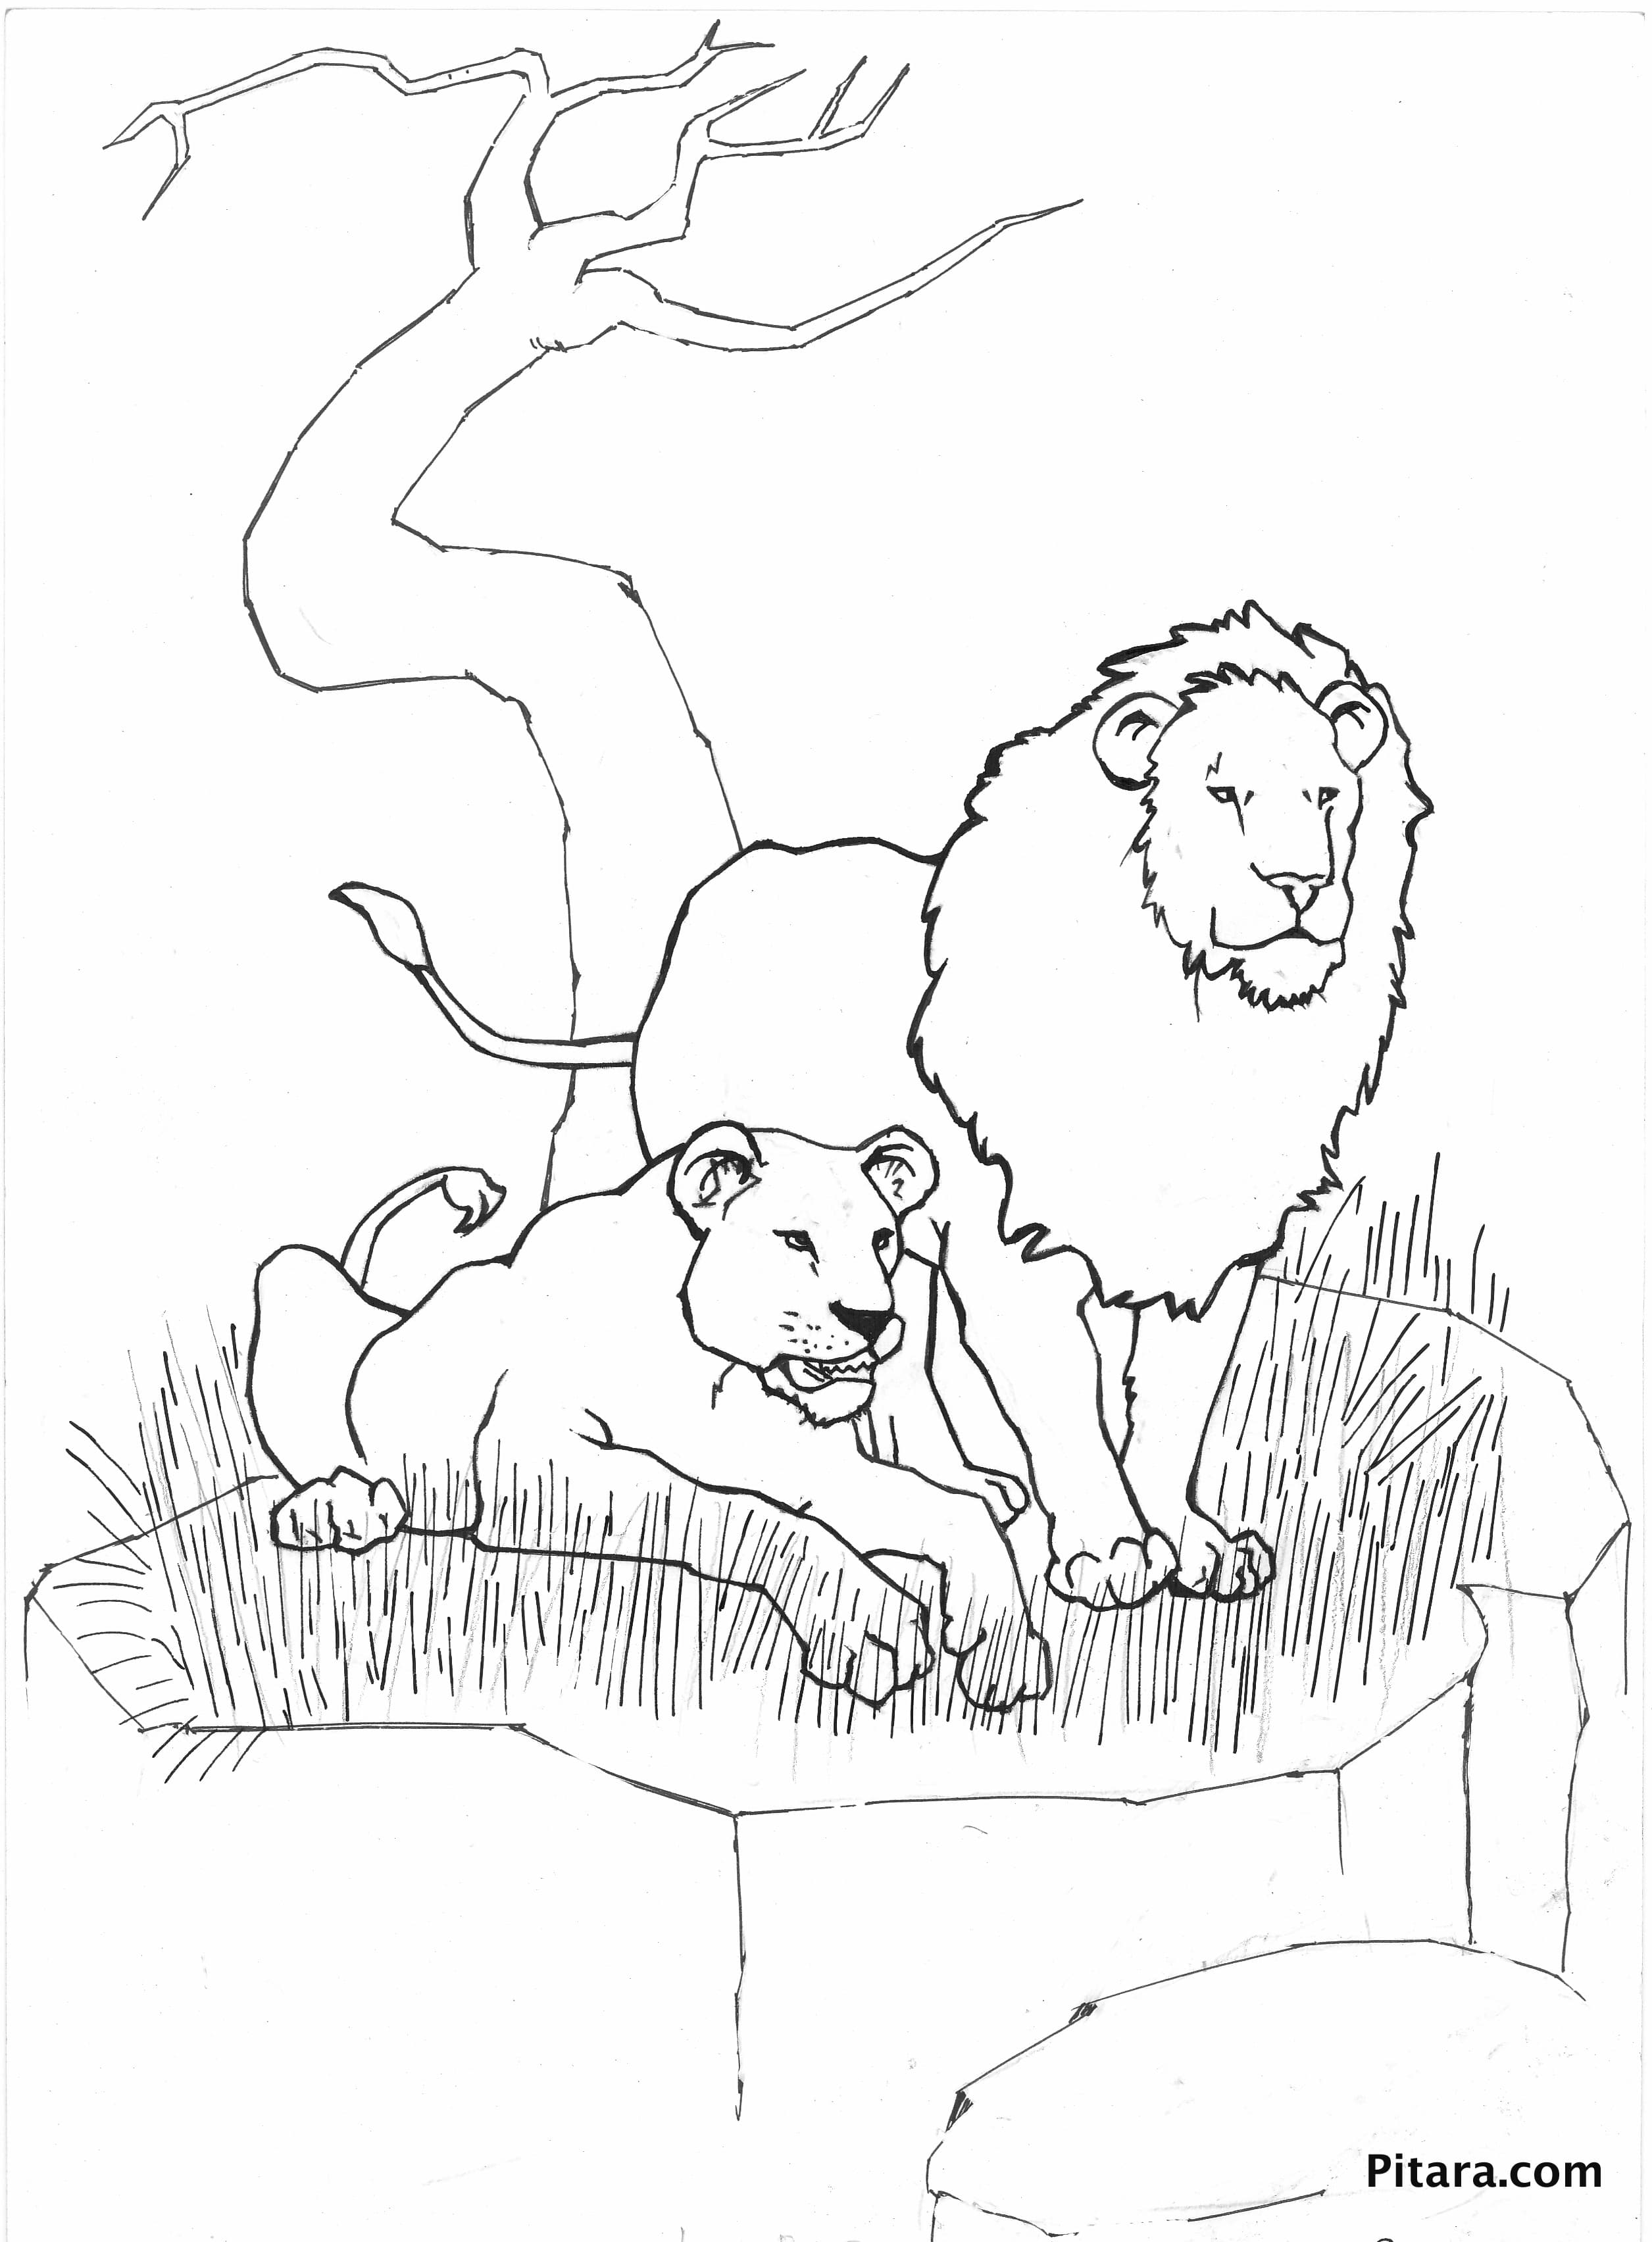 Wild animals coloring pages pitara kids network Crazy animals coloring book